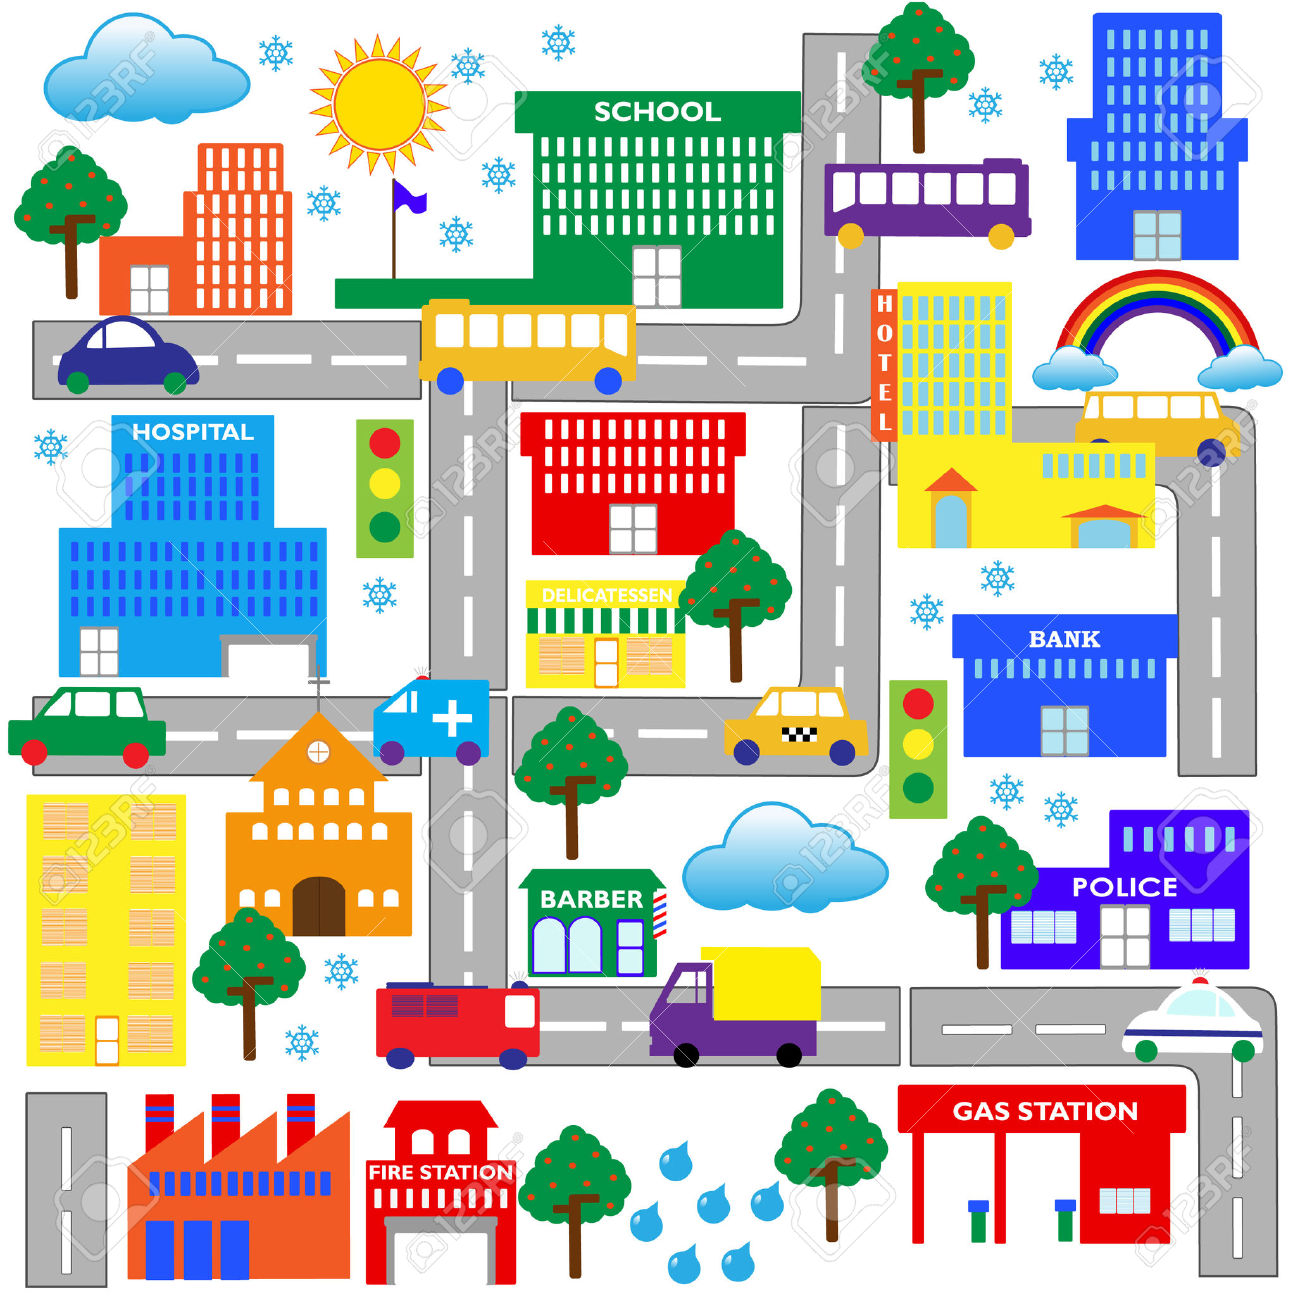 City road map clipart vector stock City road map clipart - ClipartFest vector stock